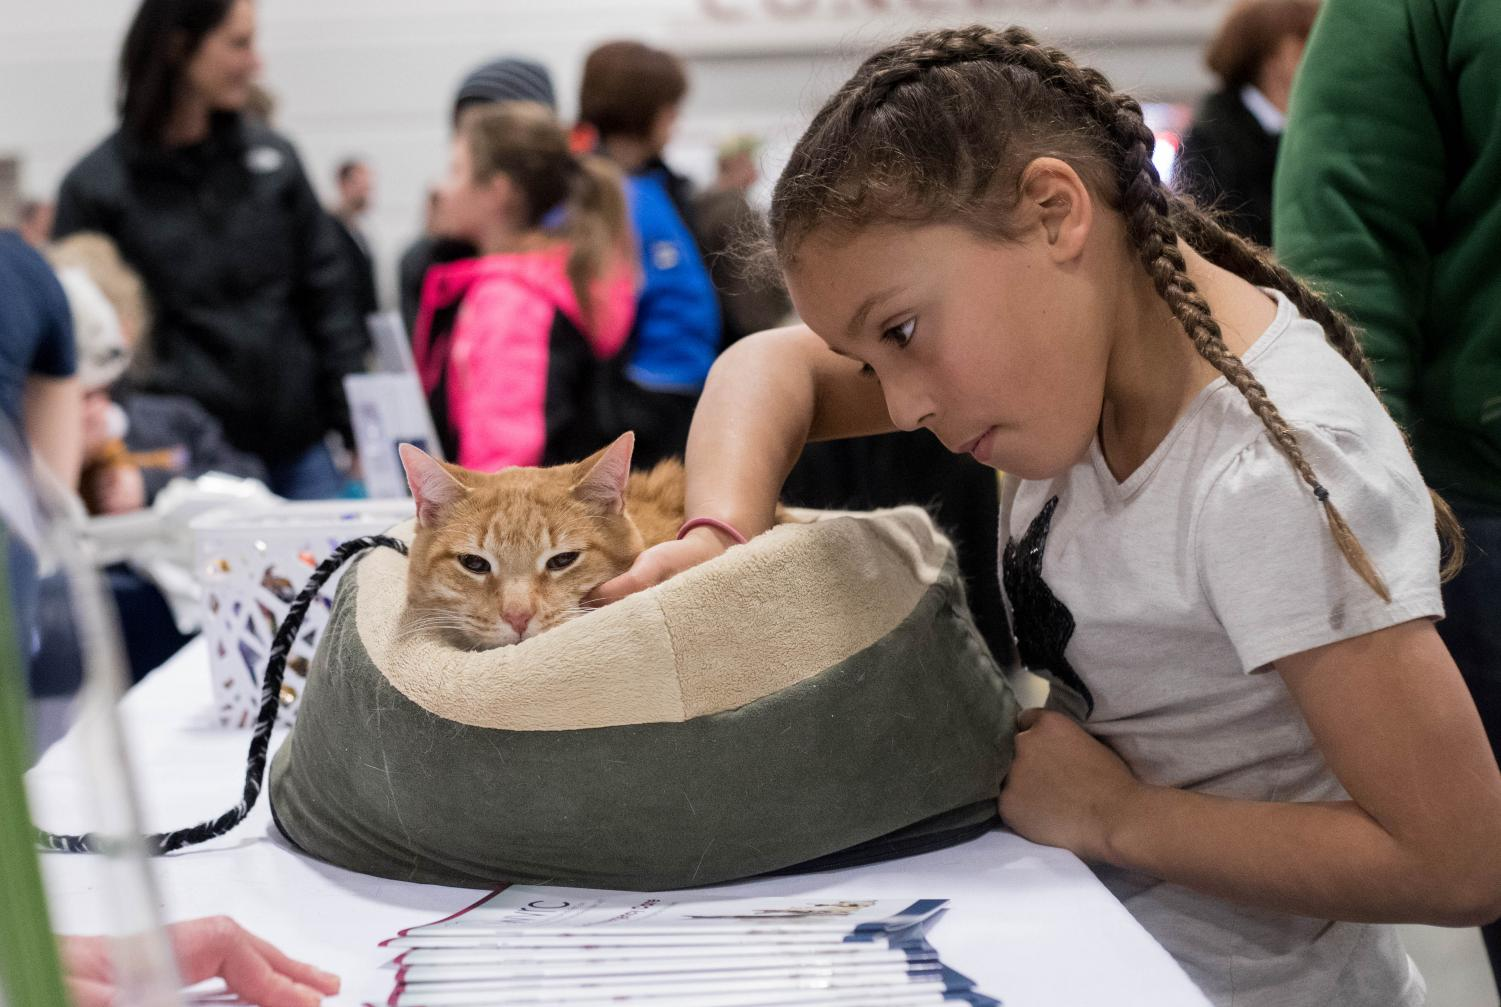 In 2018, an estimated 14,000 people visited the expo. This year they hope to attract even more pet lovers. Photo courtesy of Beth Enneking